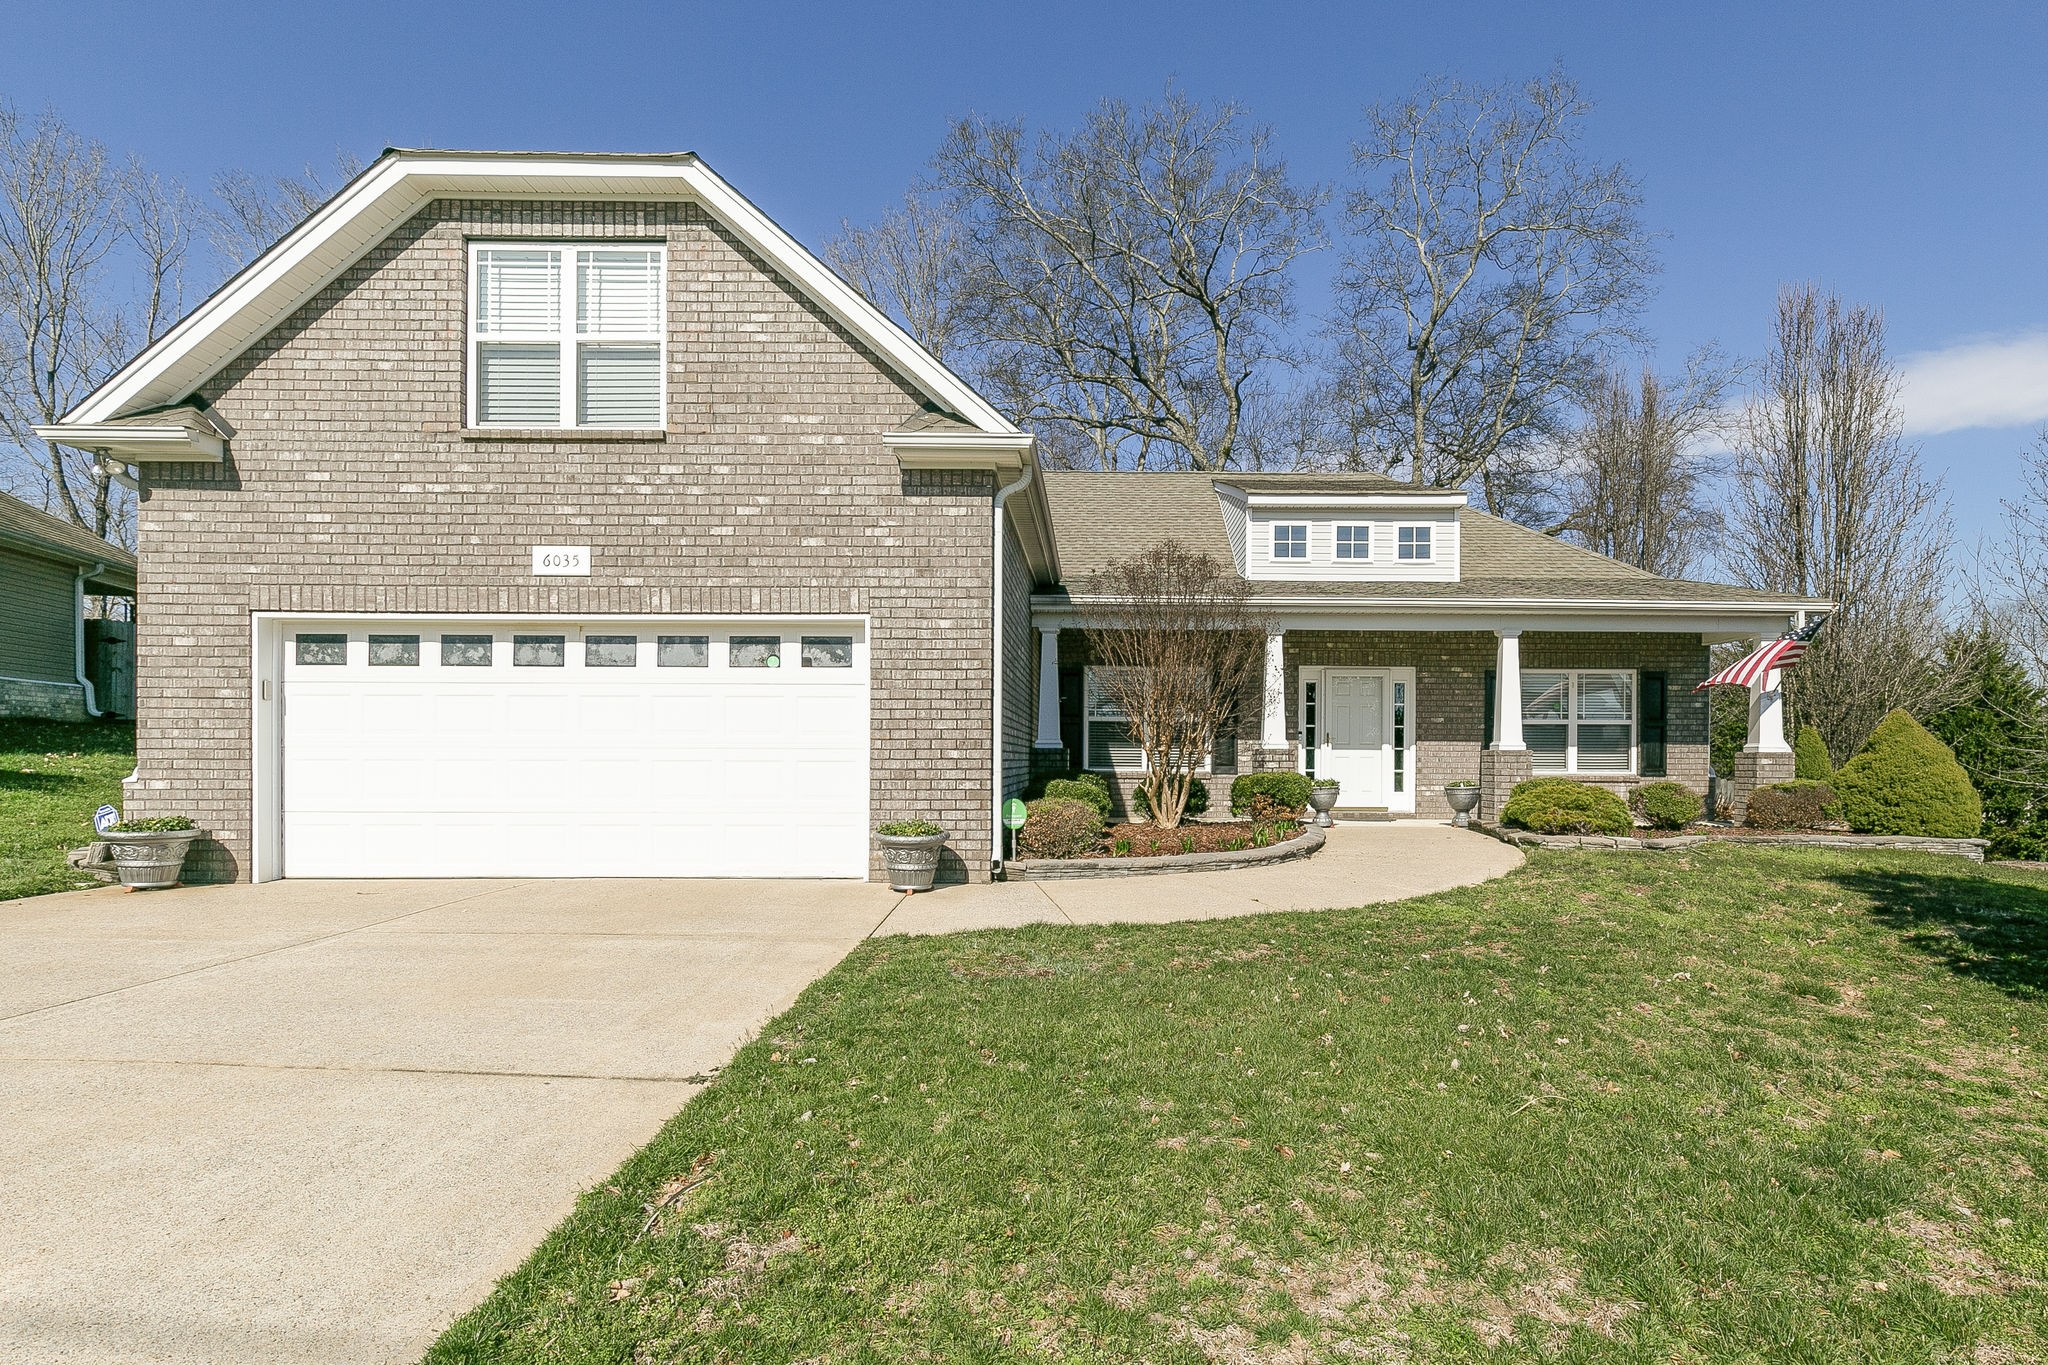 6035 Chickadee Cir, Spring Hill, TN 37174 - Spring Hill, TN real estate listing